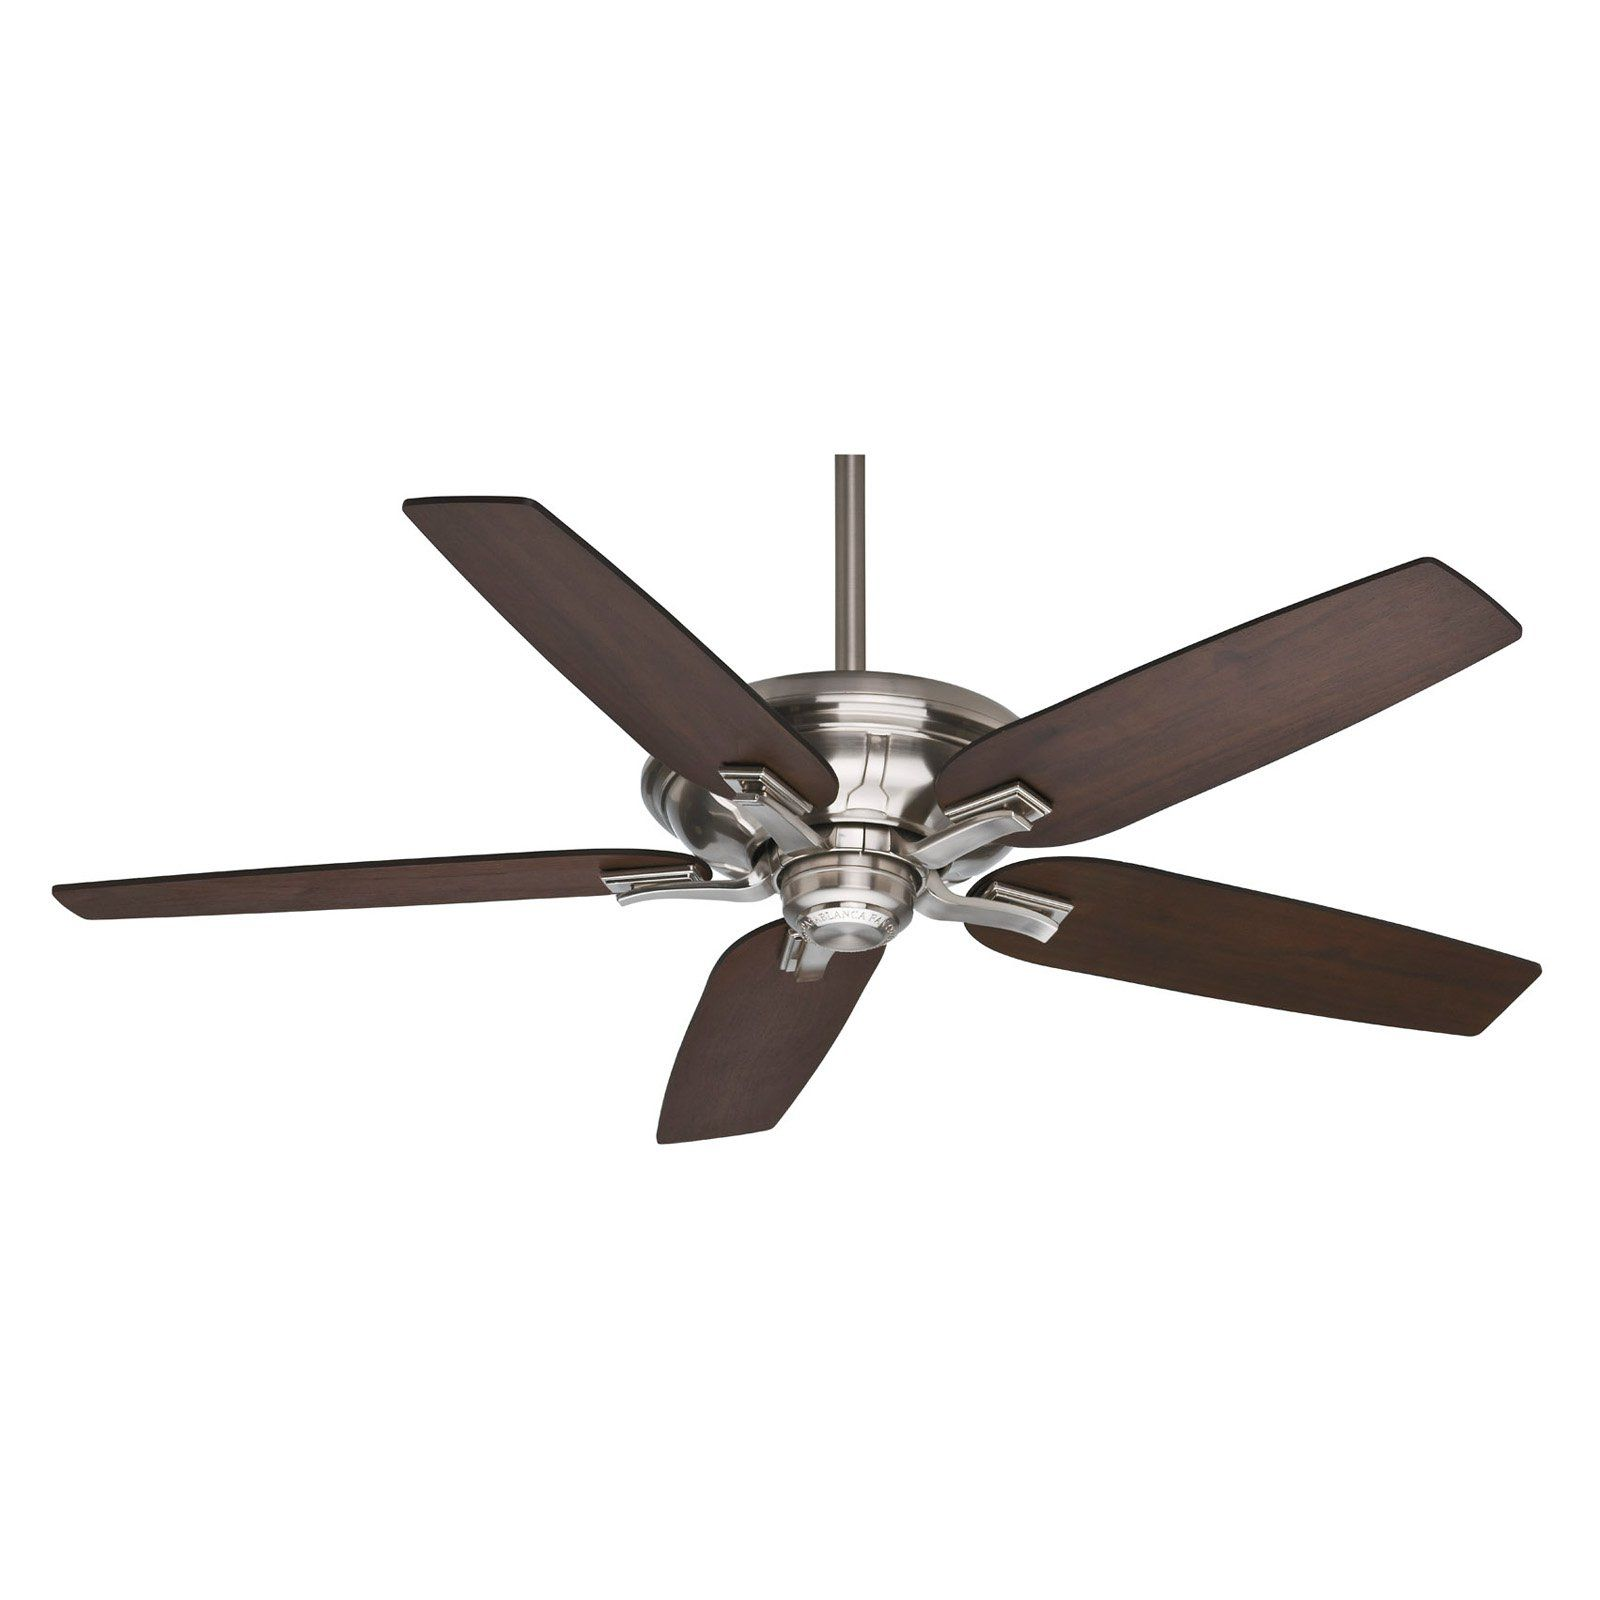 Casablanca Brescia Indoor Ceiling Fan